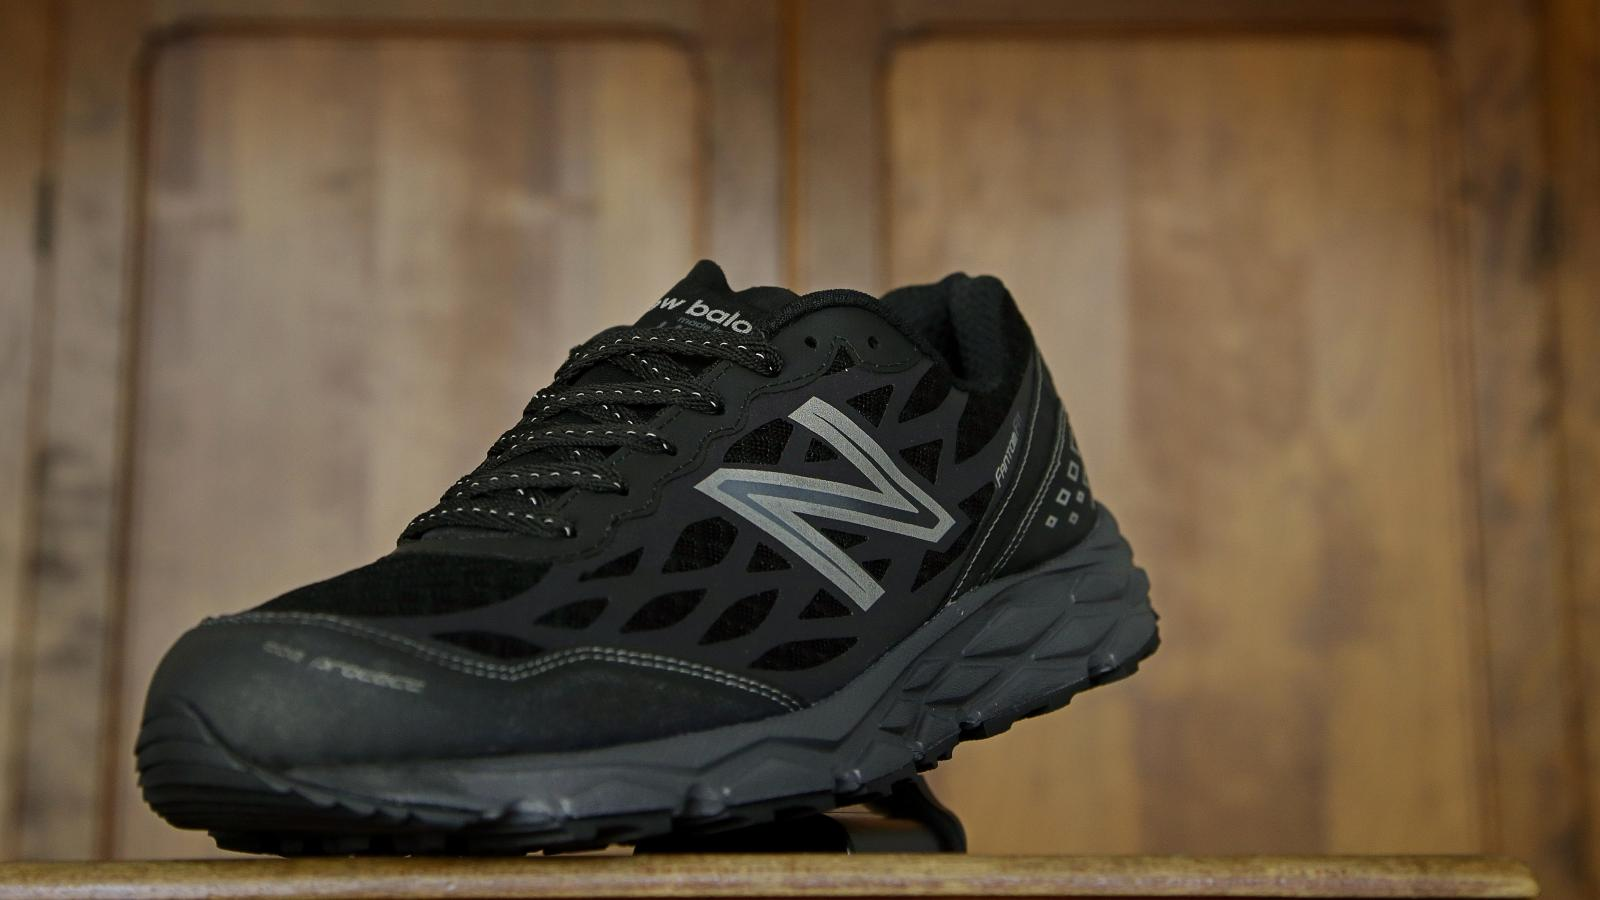 Pro-Trump white supremacists have called New Balance sneakers